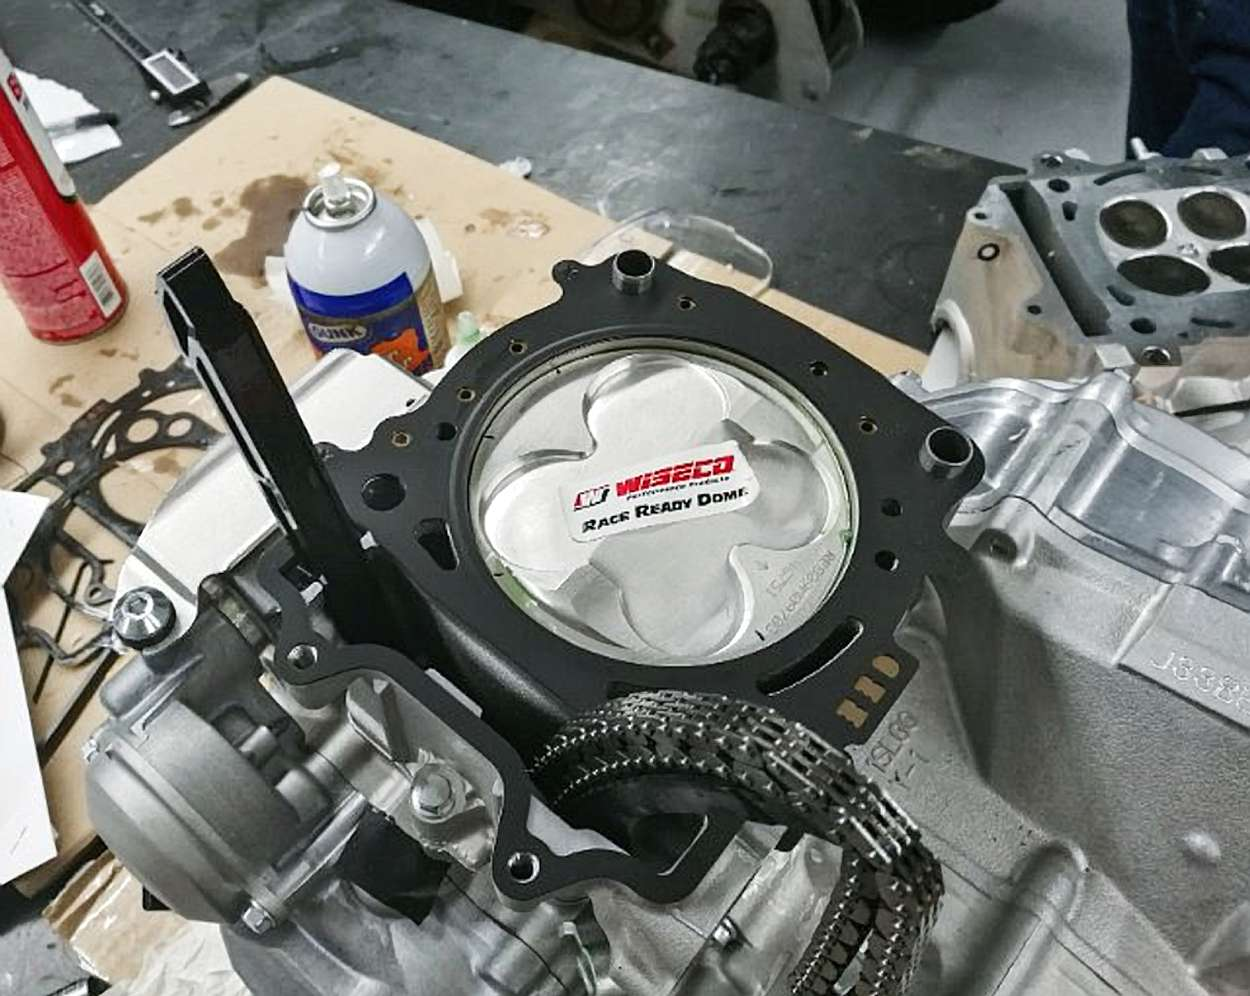 How to Know When to Replace the Piston in Your Motorcycle or